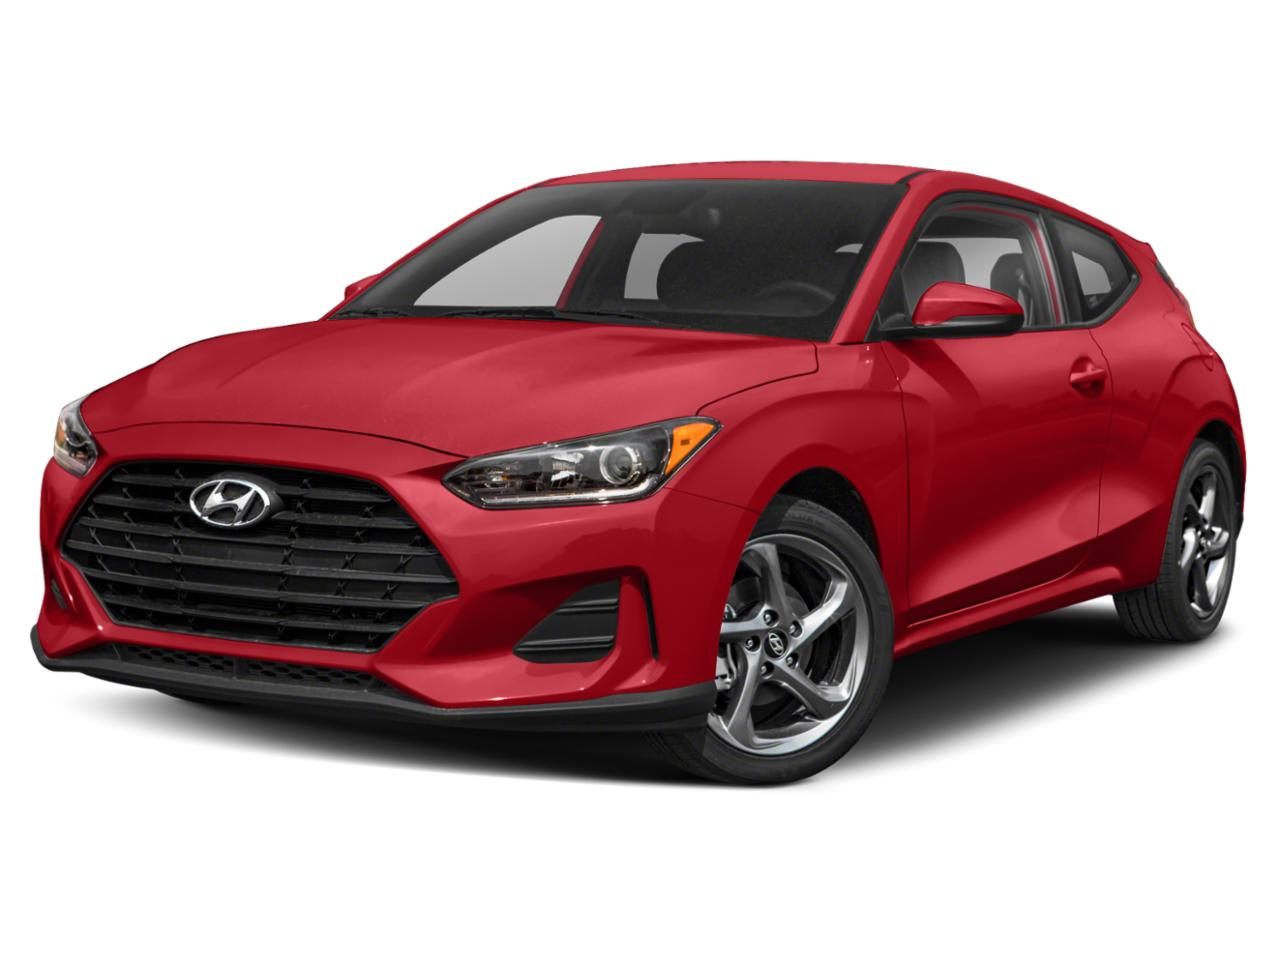 2019 Hyundai Veloster Vehicle Photo in Mission, TX 78572